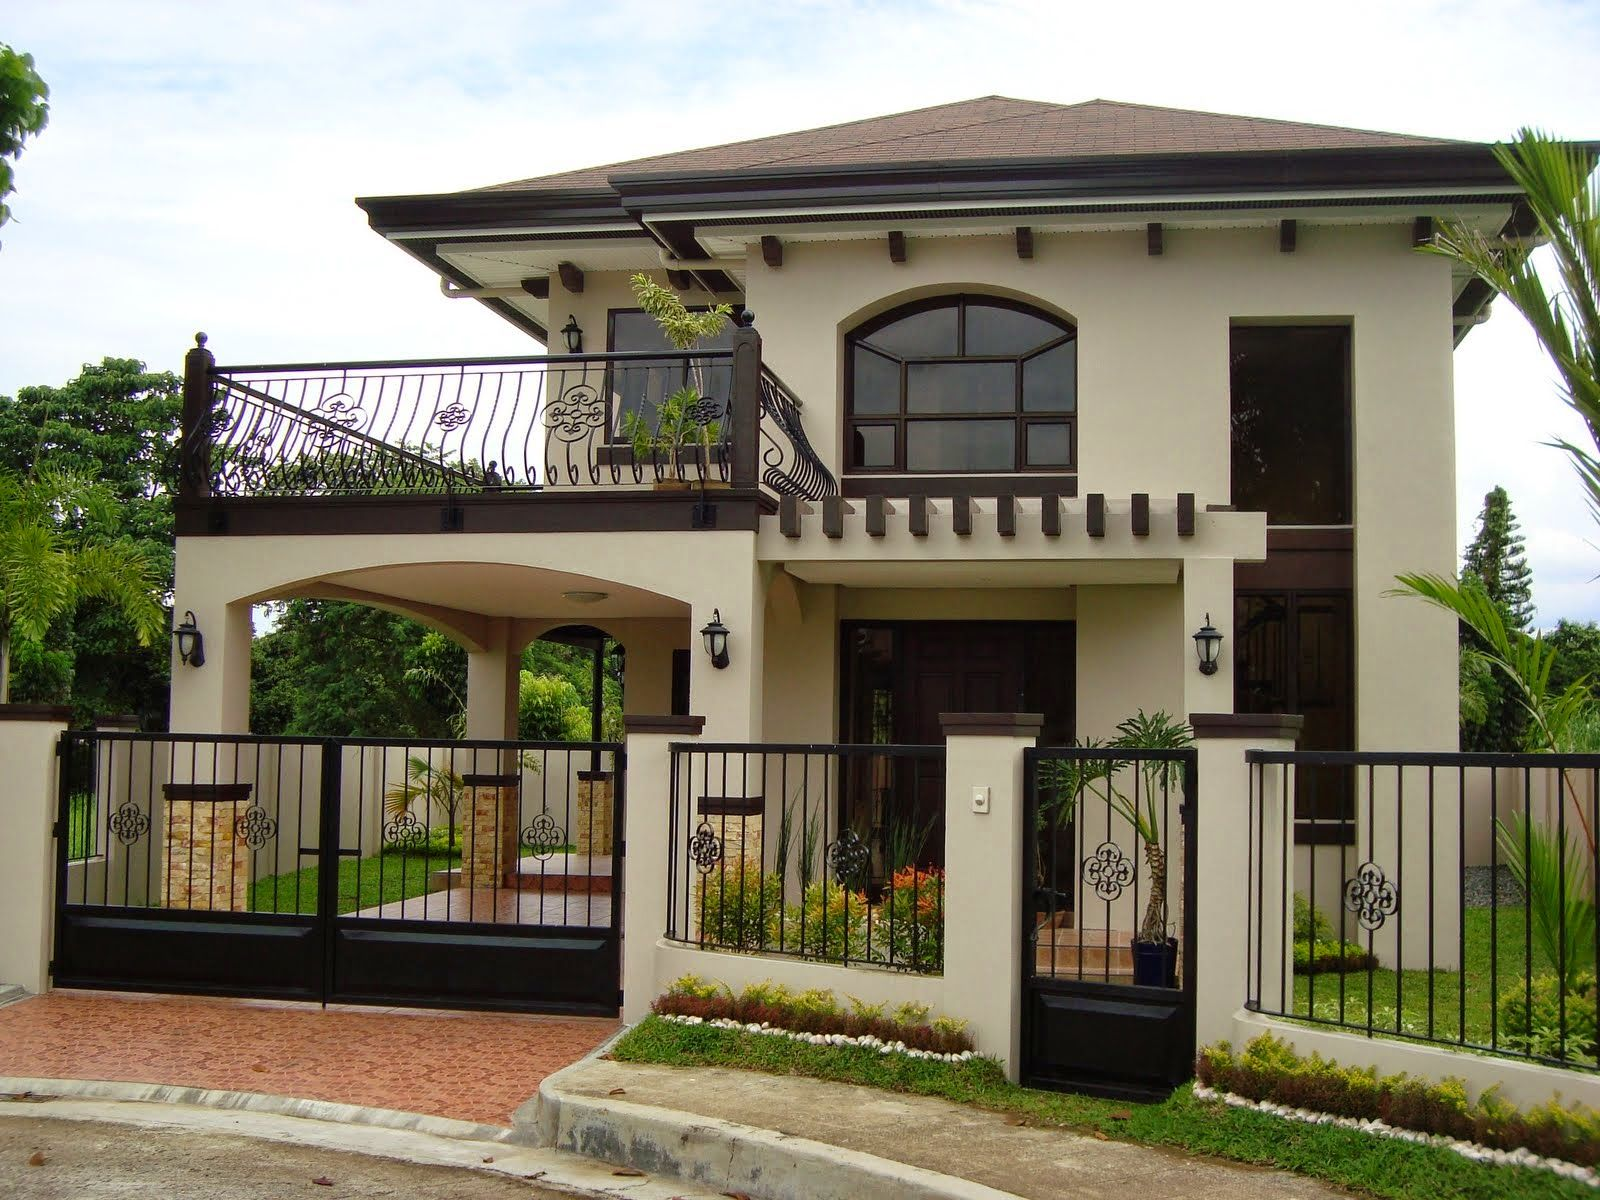 storey house design in the philippines and home also pin by ravi kumar on farm ideas pinterest rh